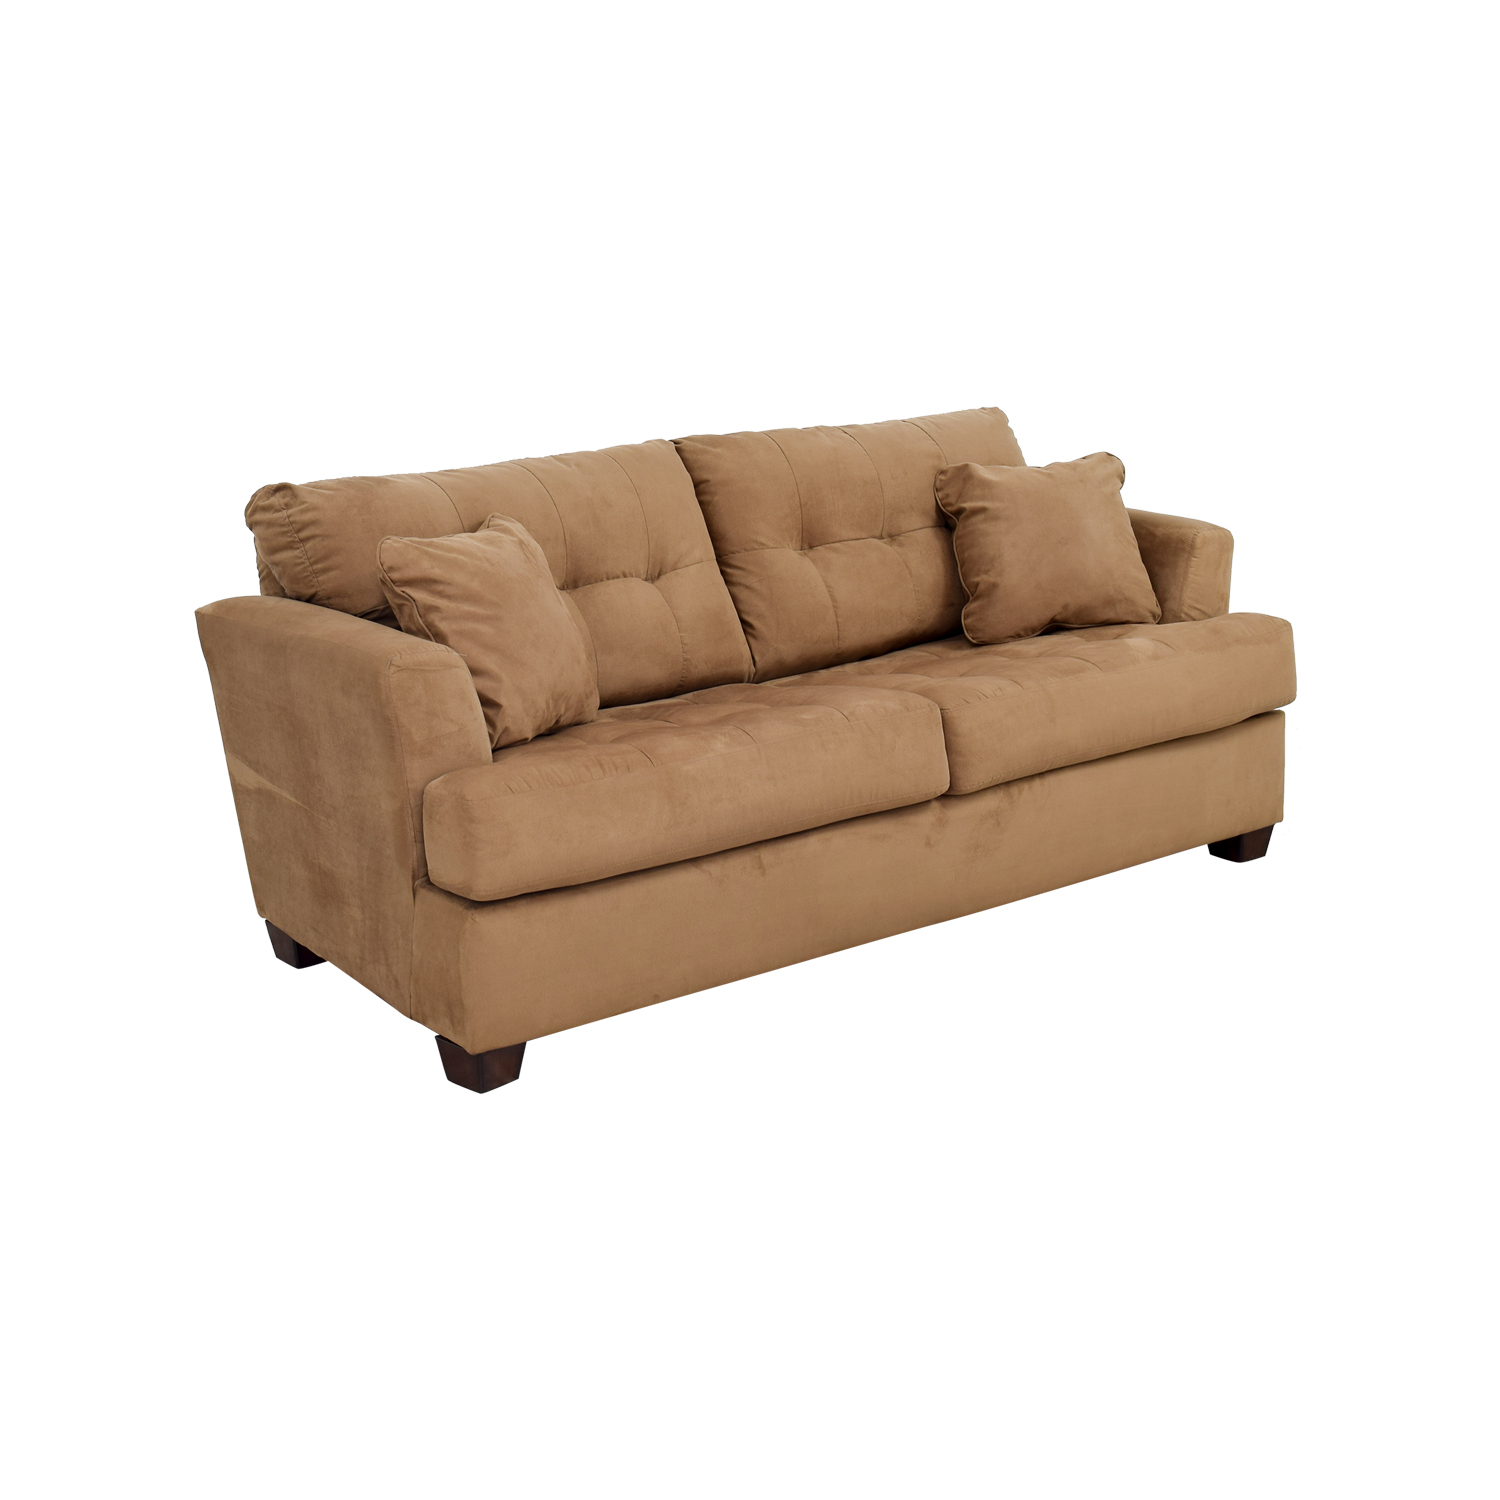 microfiber sofa bed heated set tan couch and loveseat